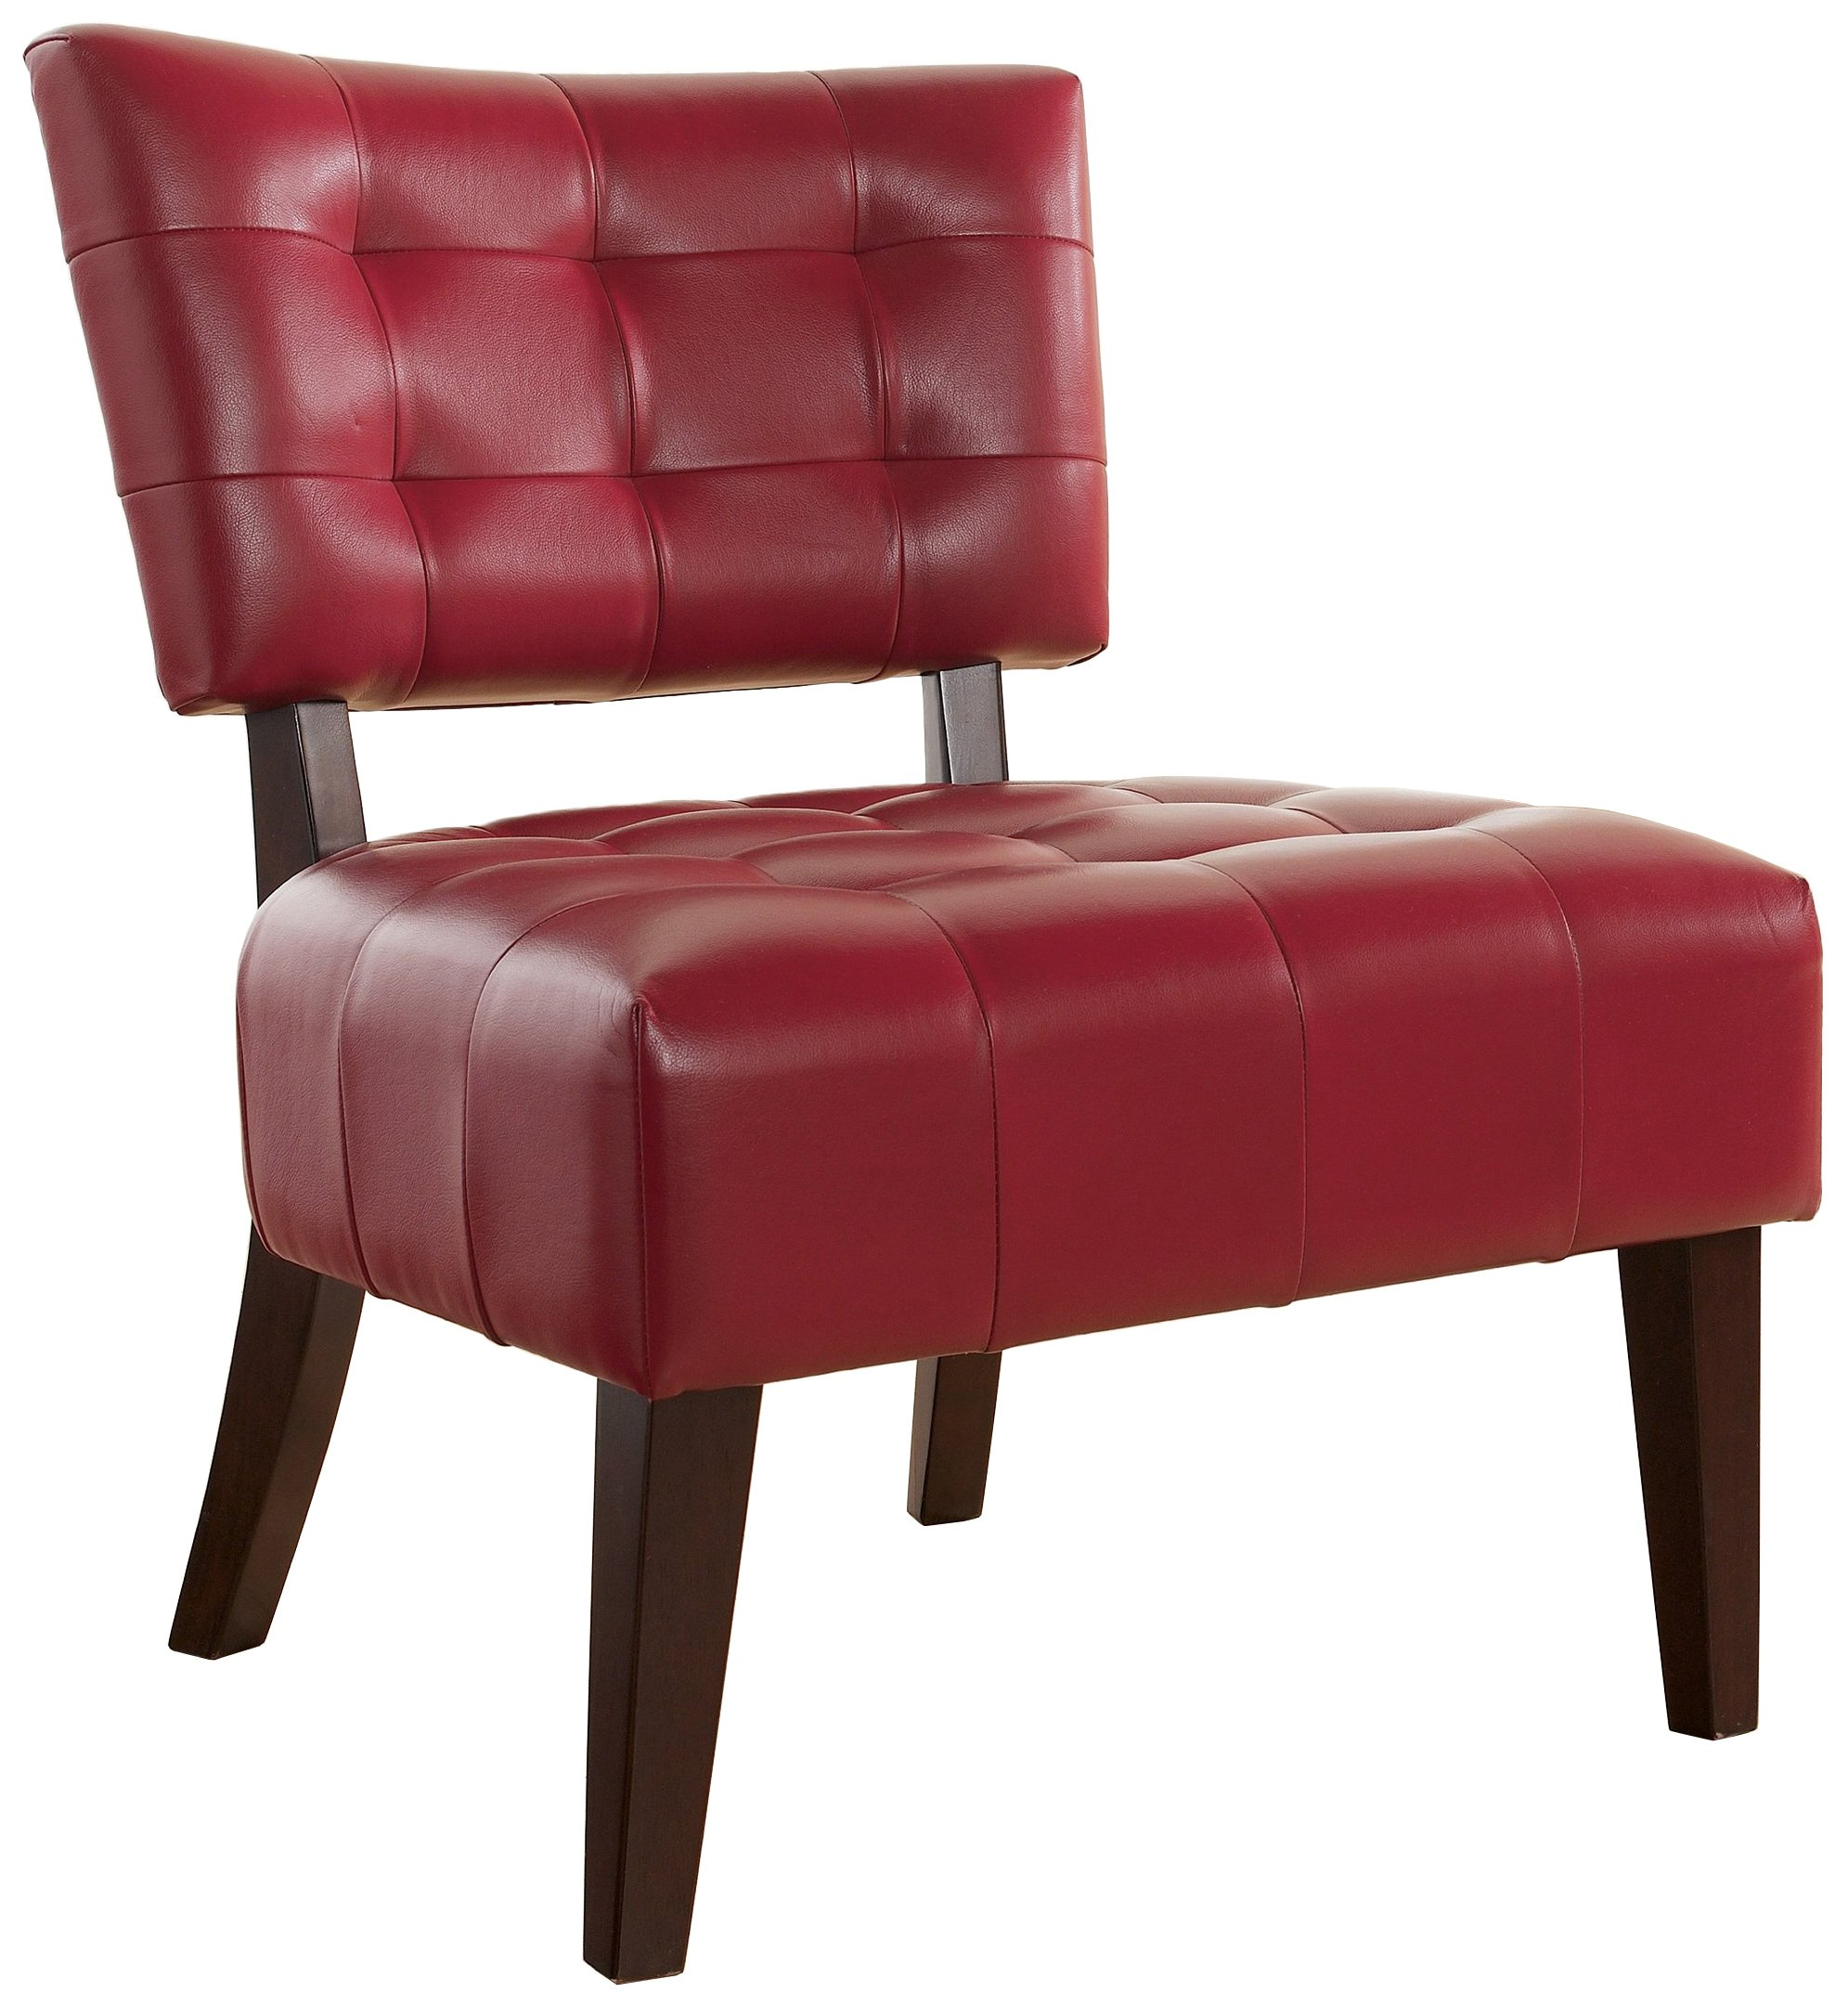 """Roundhill Furniture Blended Leather Tufted Accent Chair with Oversized Seating - Oversized seating provides large comfort, durable blended leather. Kiln-dried hardwood frame; Materials: wood legs, PU leather (faux leather) Size: 27""""W x 31""""D x 34""""H - living-room-furniture, living-room, accent-chairs - 81itIcrSibL -"""